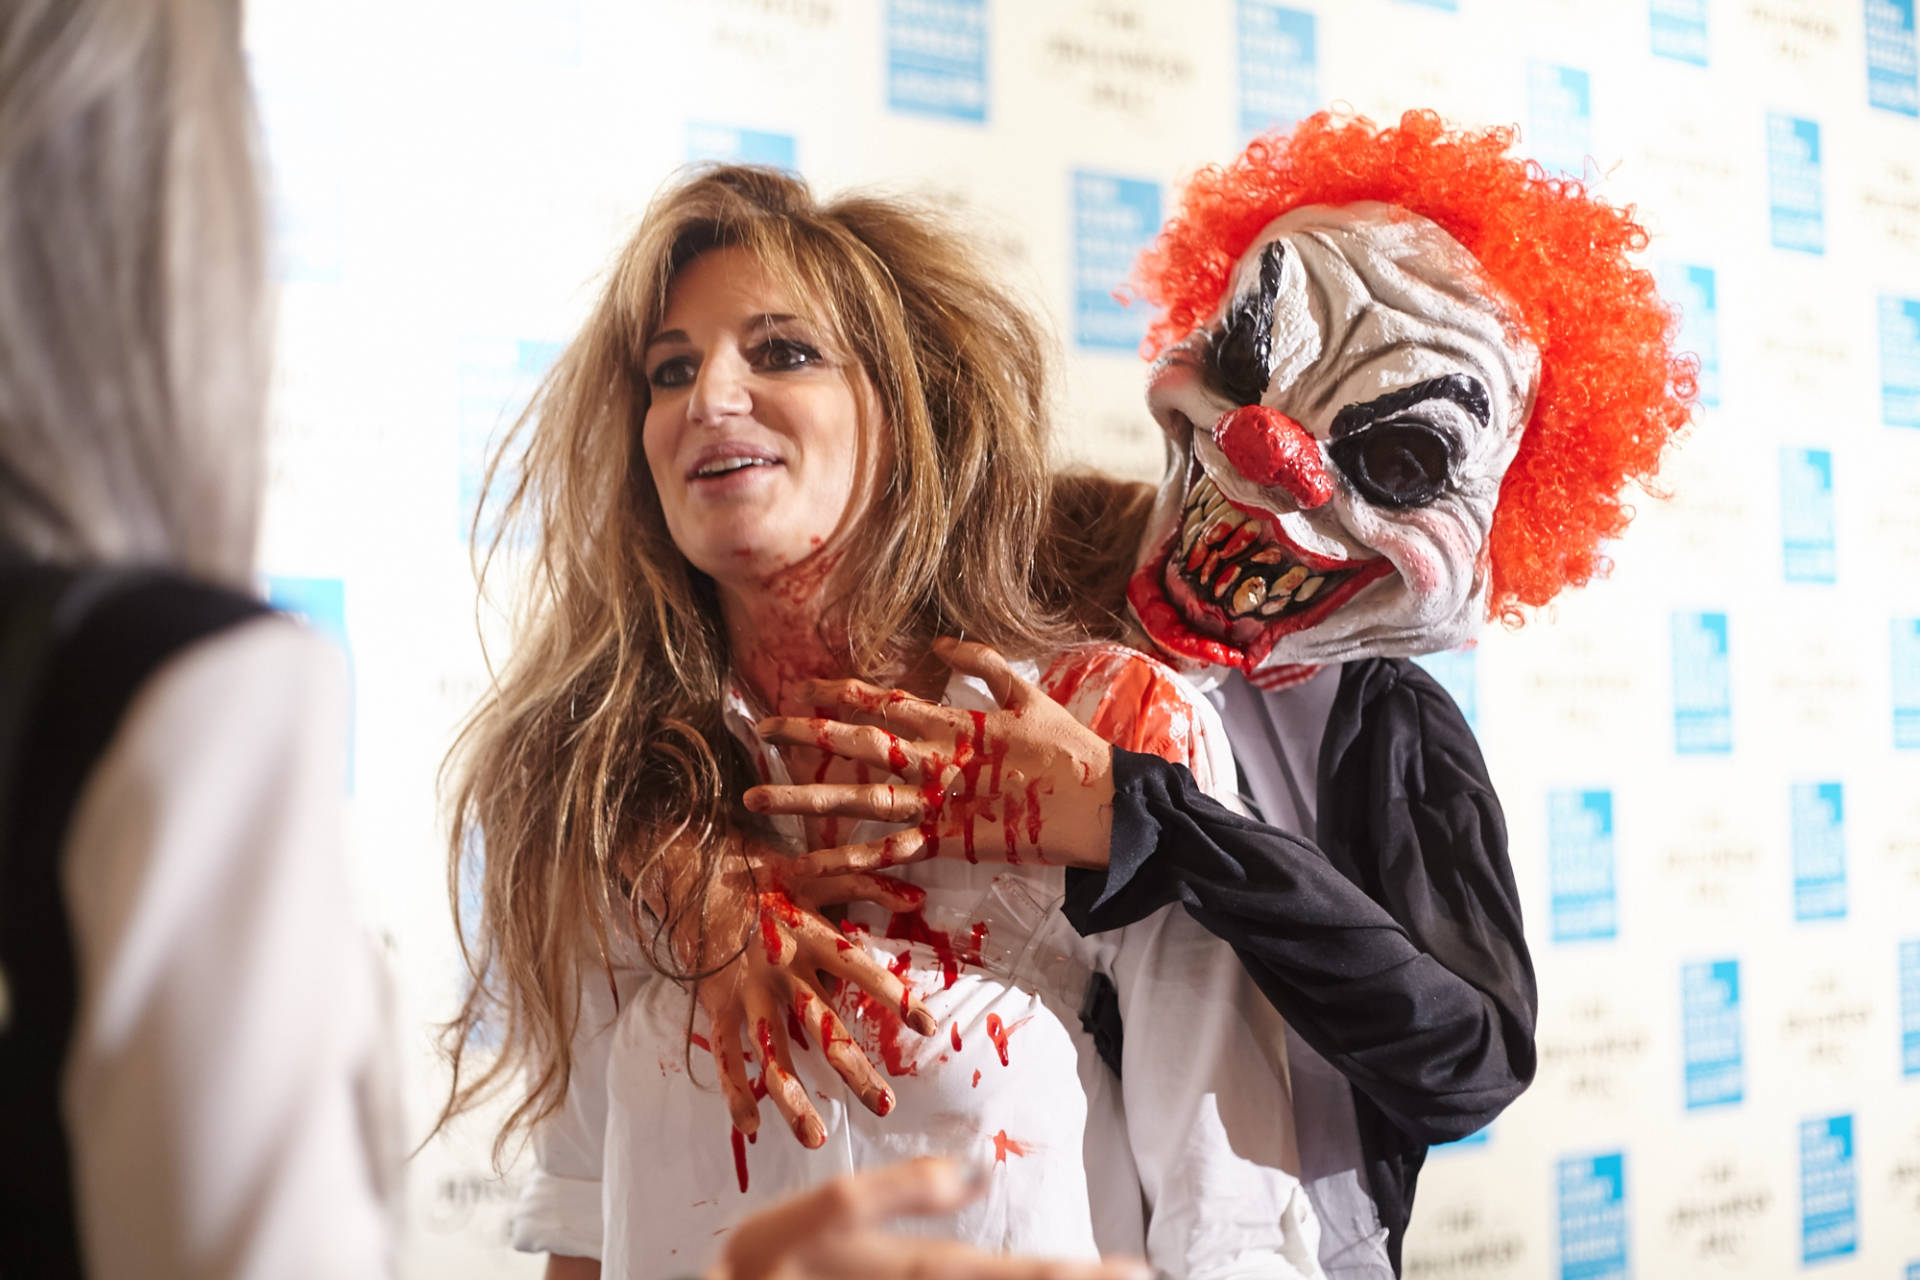 jemima khan at the unicef halloween ball